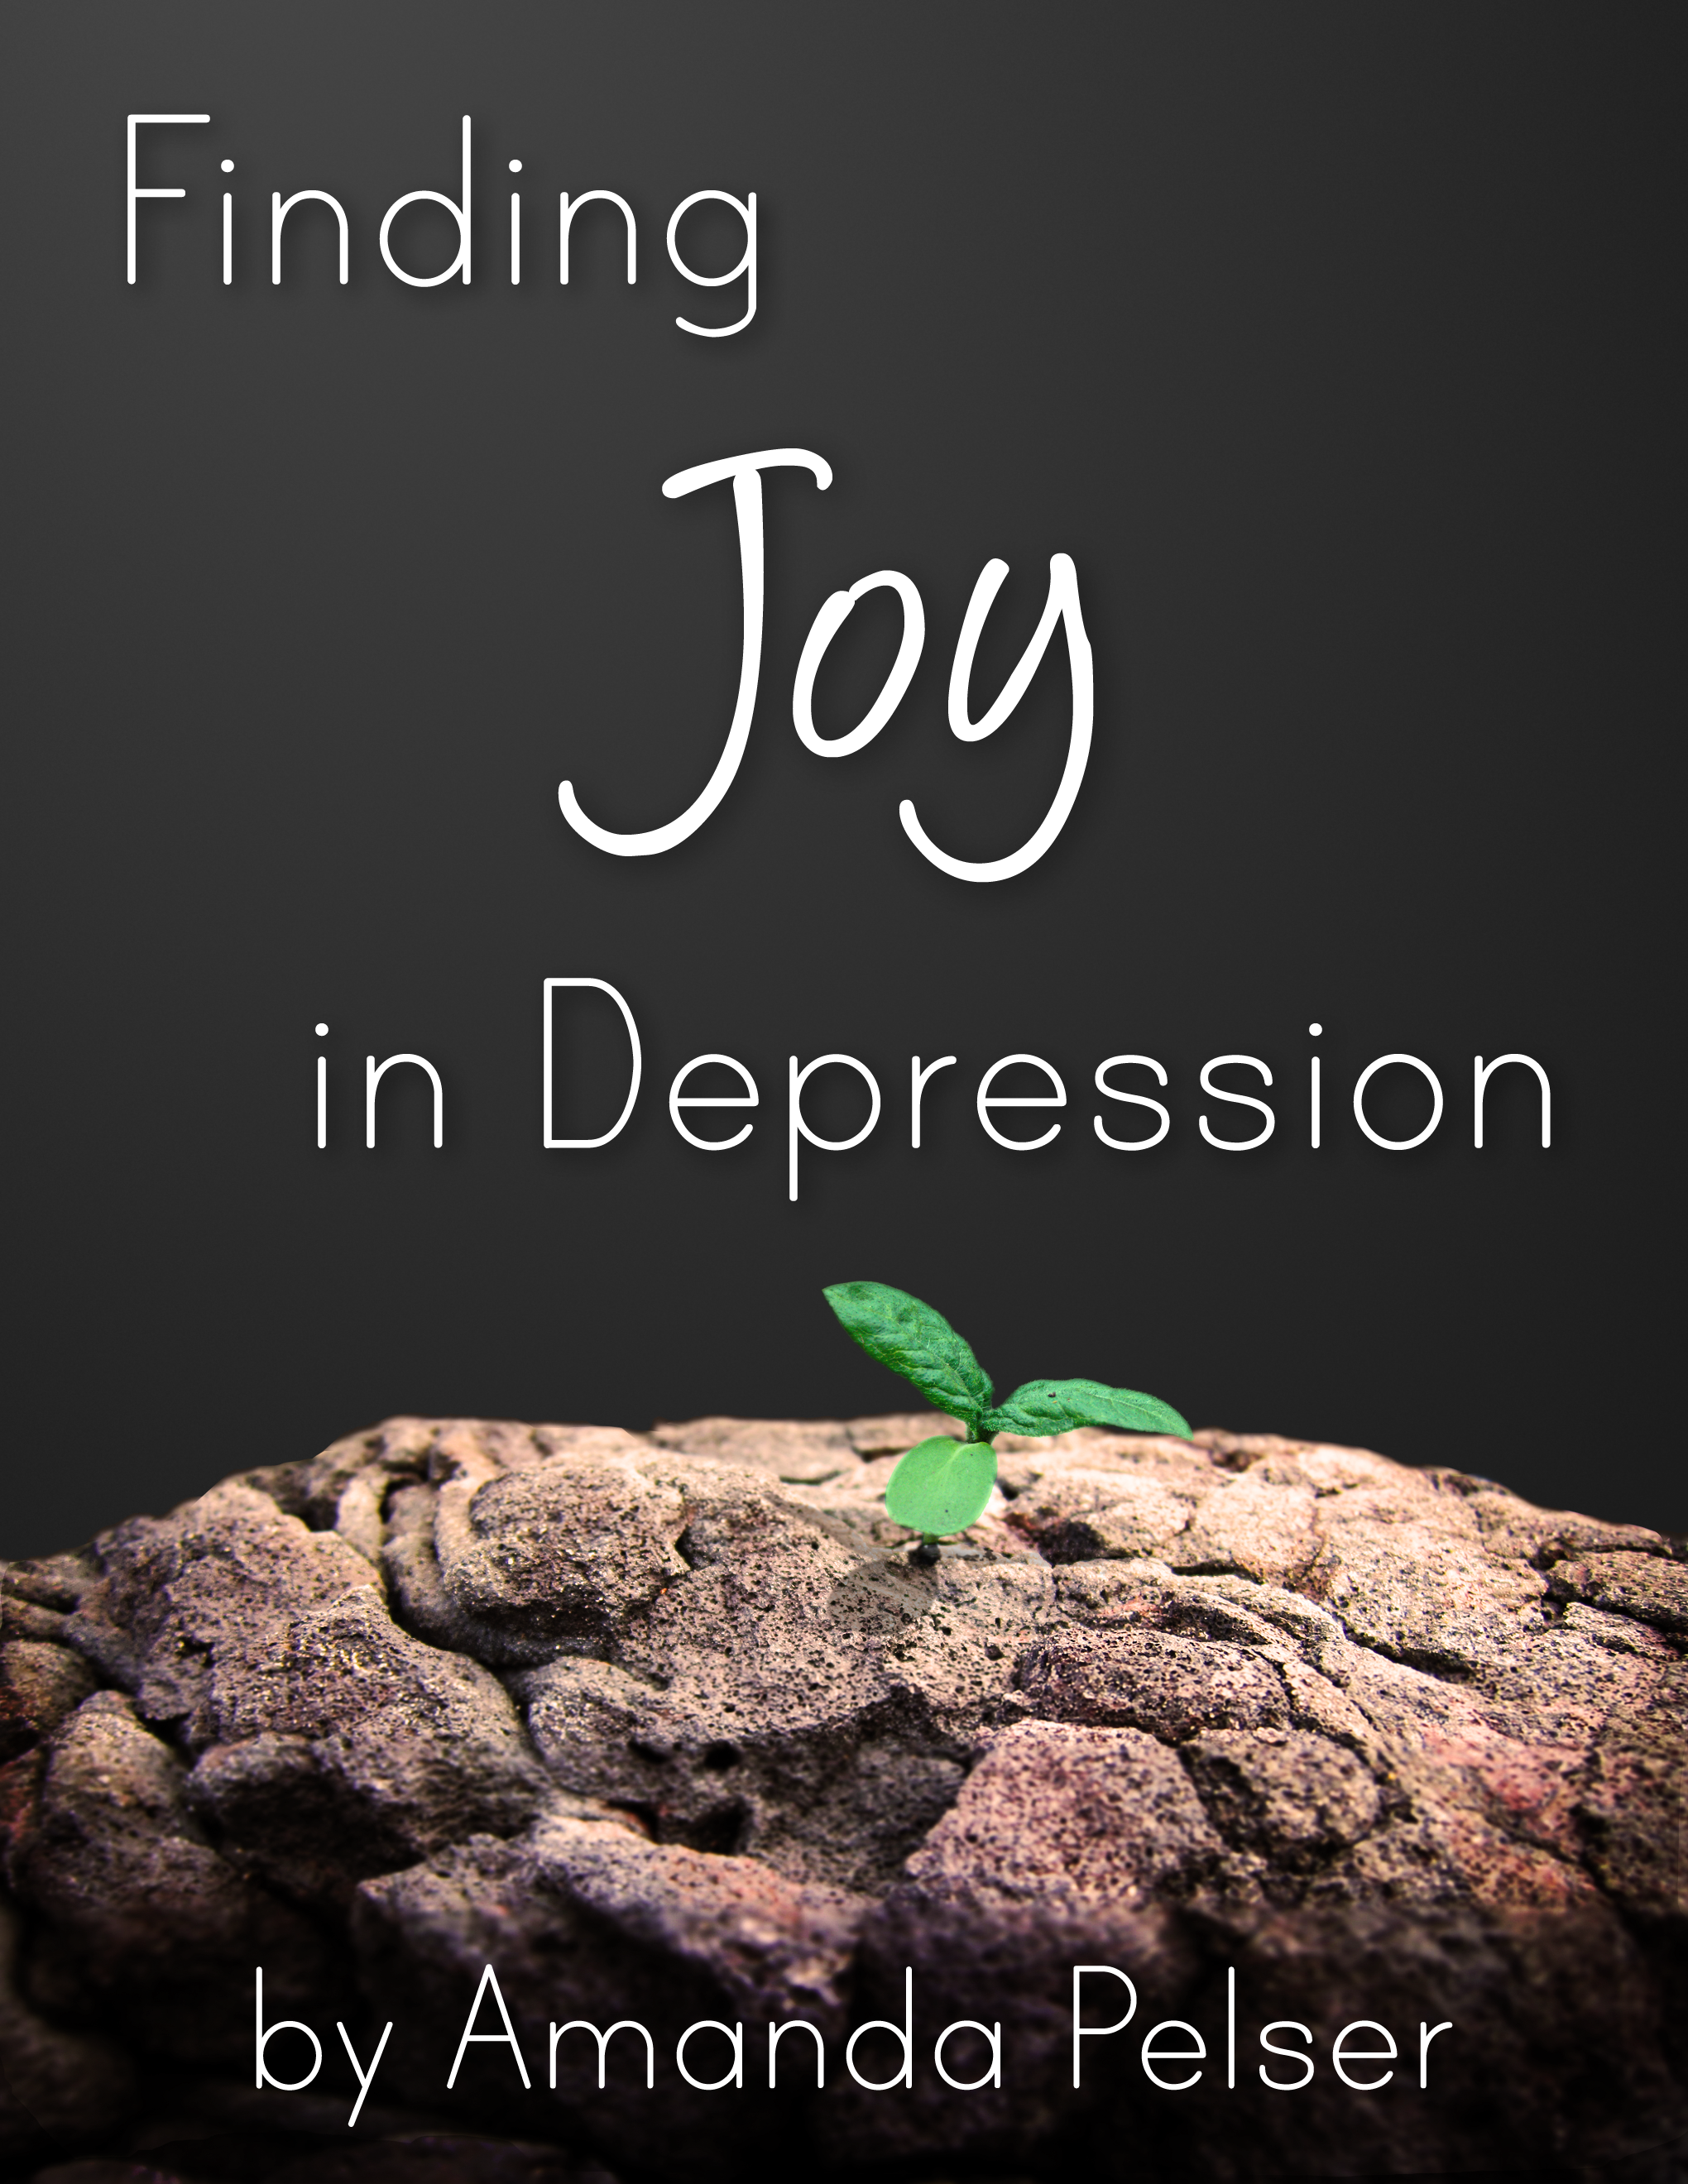 Finding Joy in Depression Launches March 12